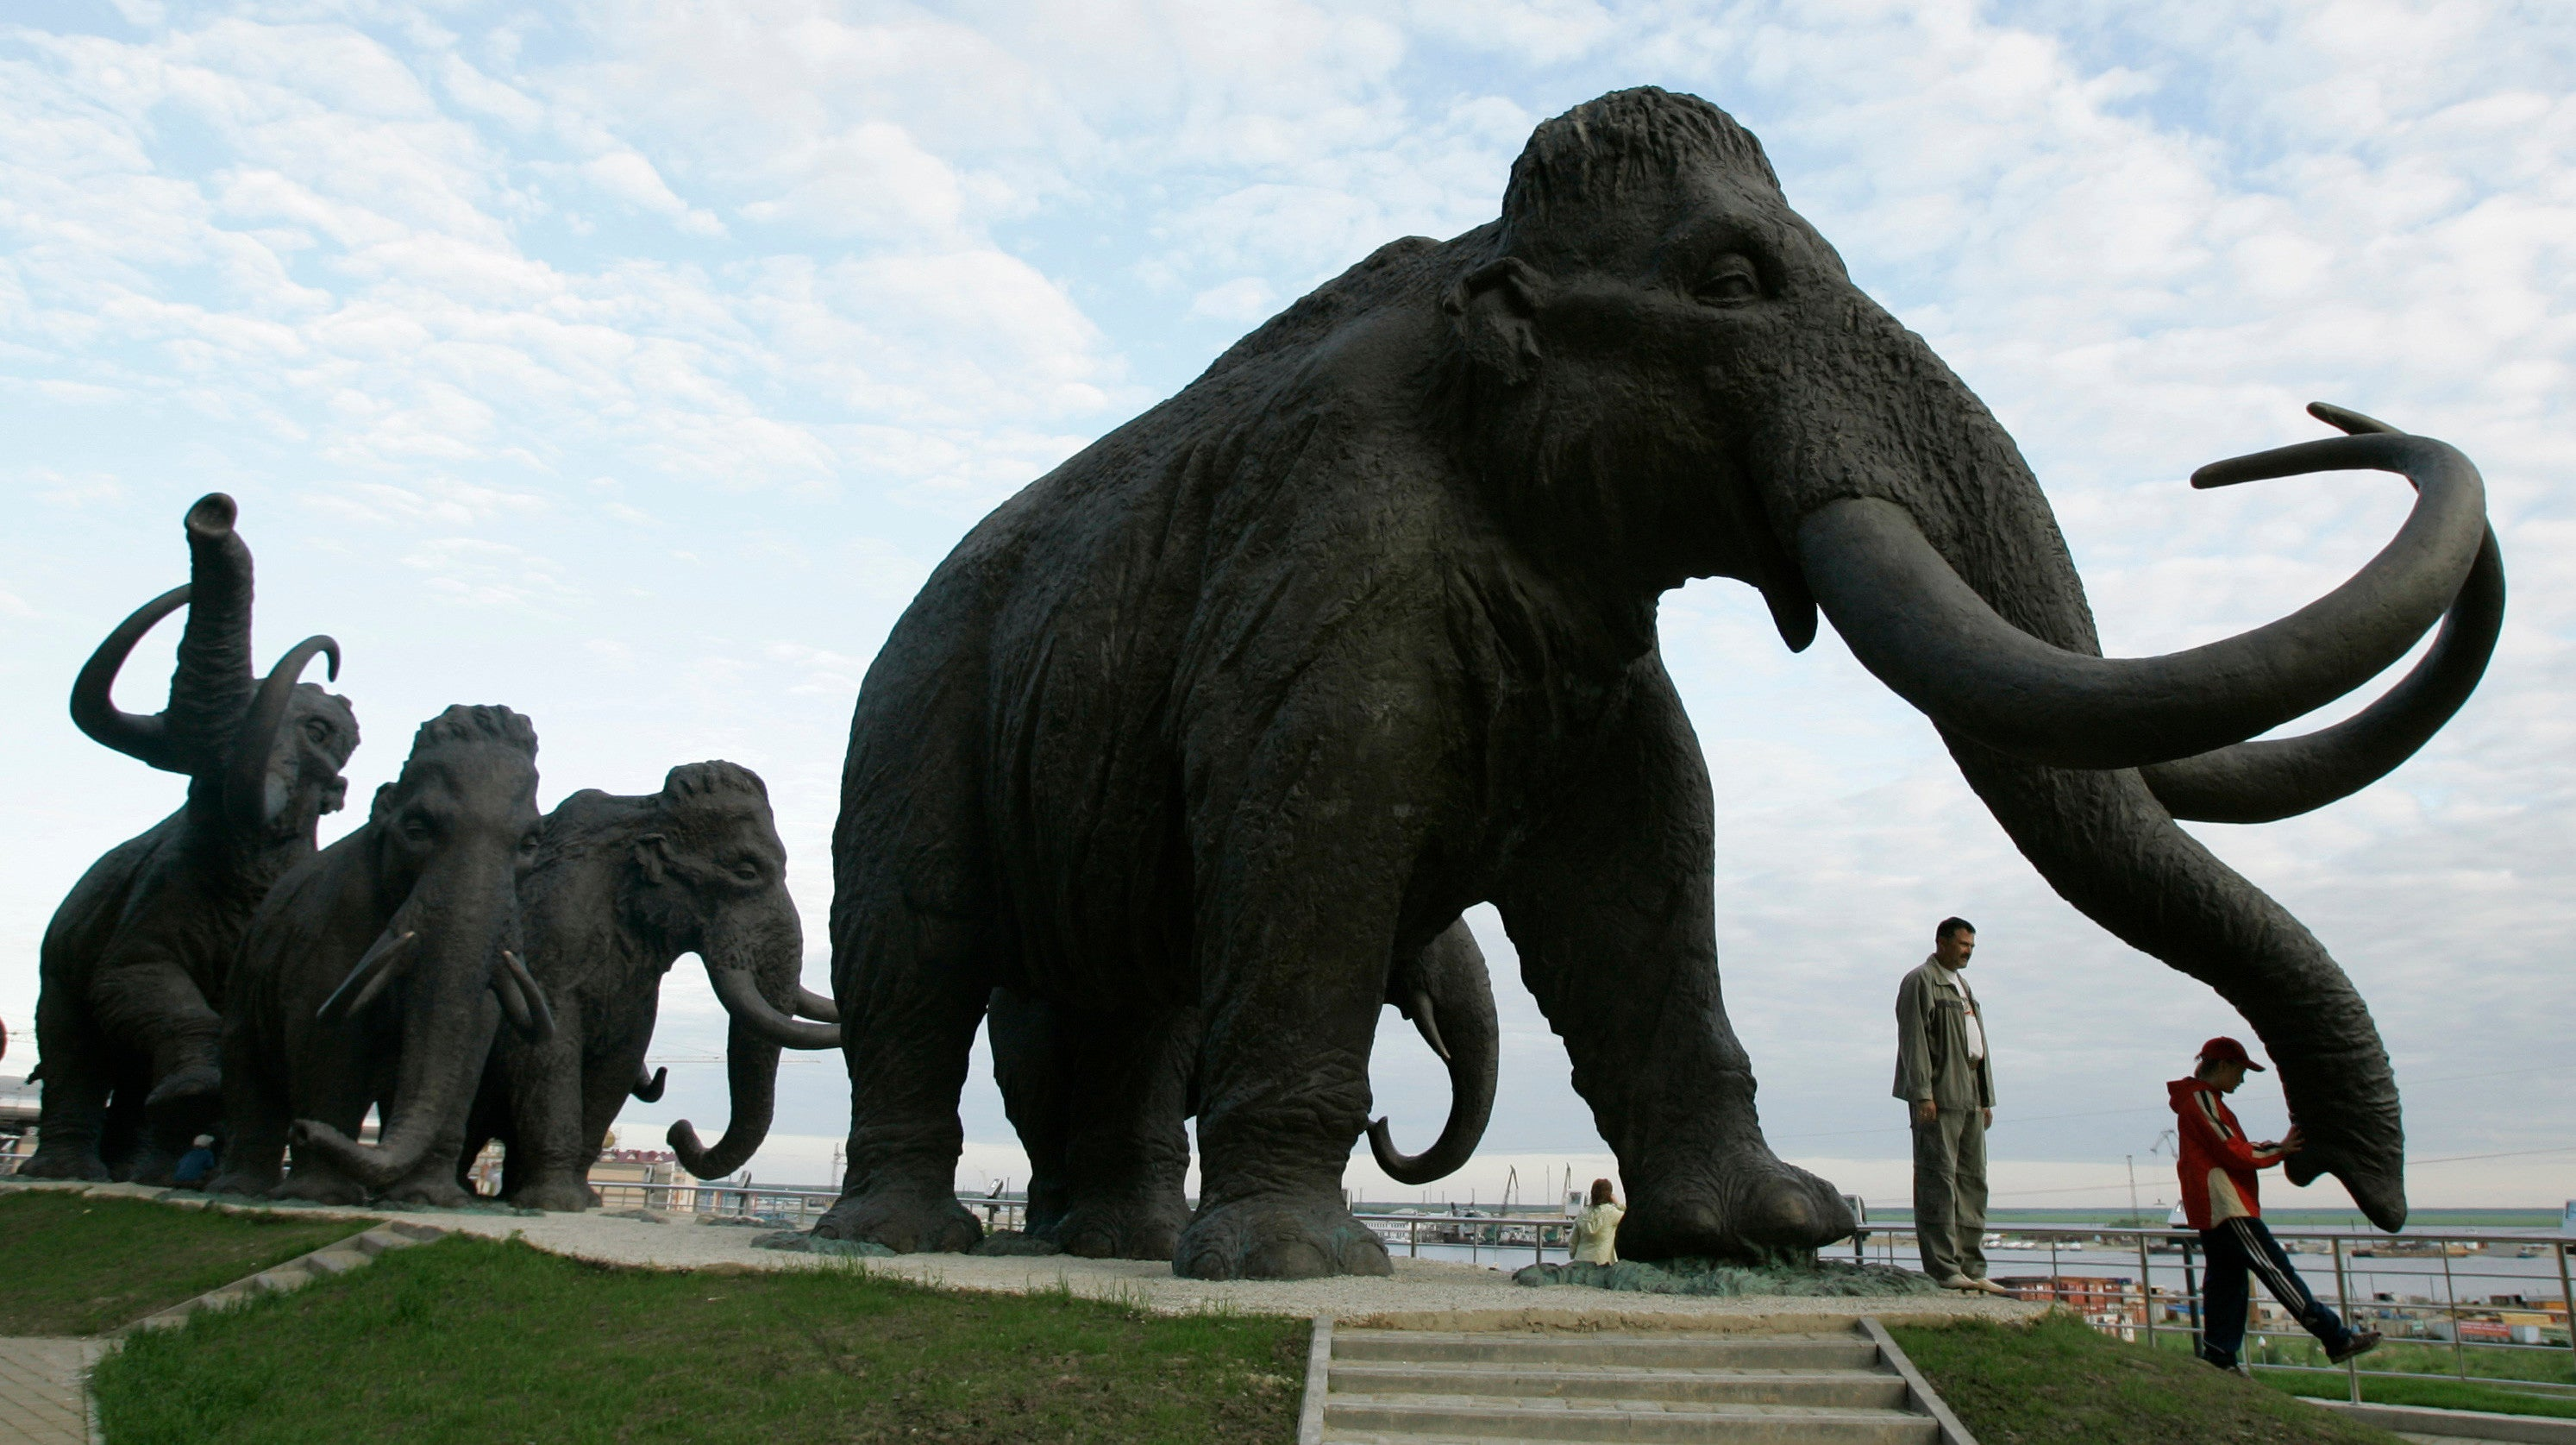 One Of The Last Mammoths On Earth Was So Mutated, It Lost The Ability To Smell Flowers